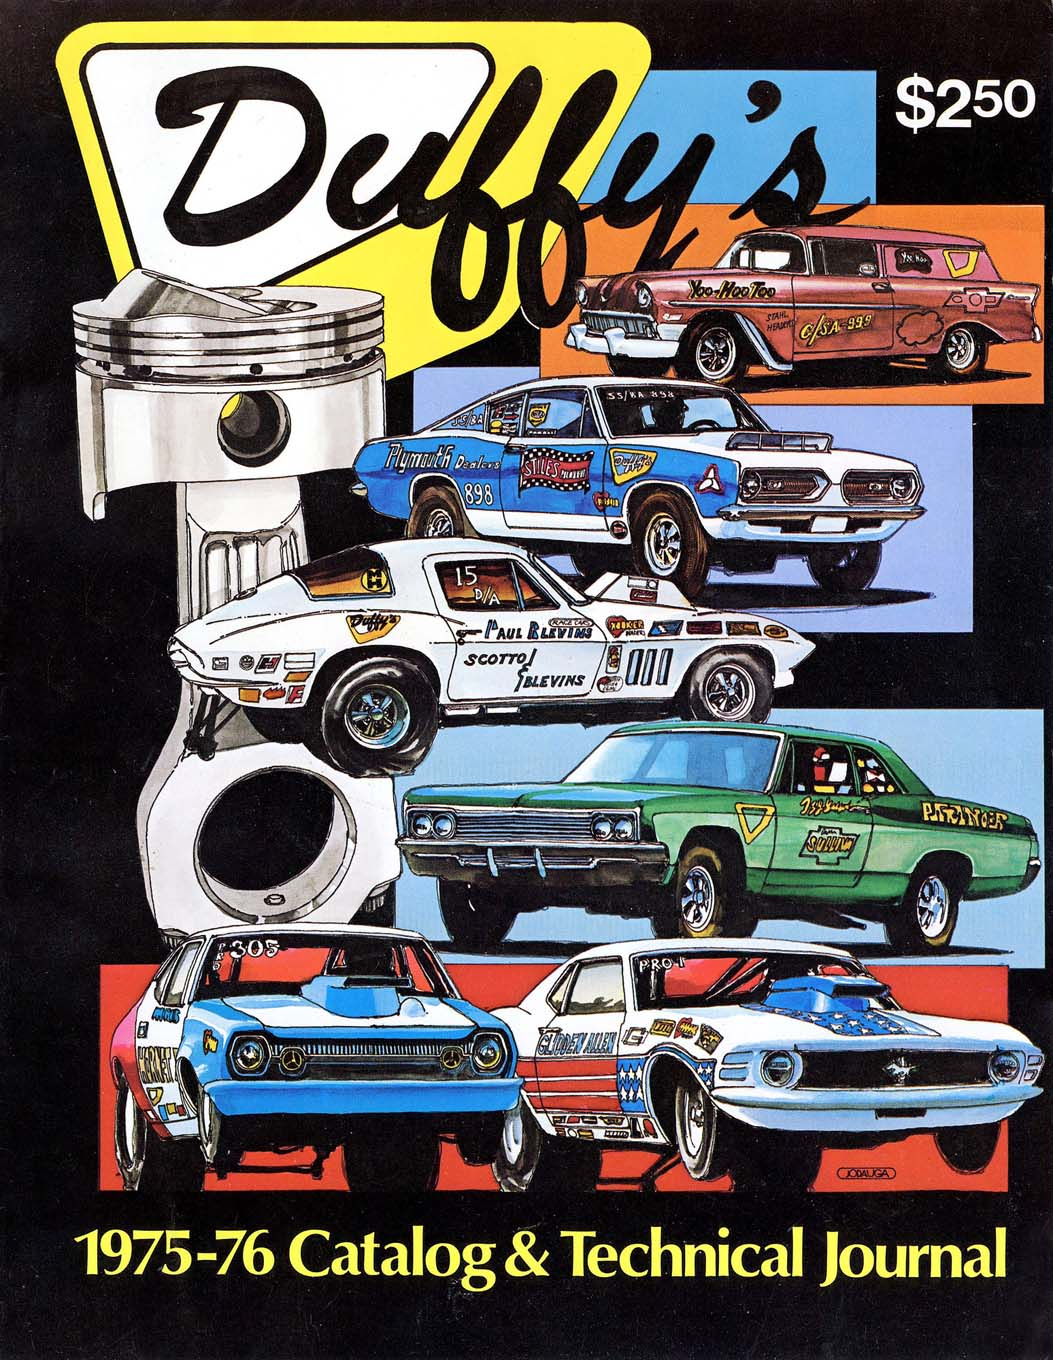 During the mid-1970s, Jodauga joined forces with East Coast speed merchant and promoter Bob Duffy to form an advertising agency, which produced this Duffy's catalog in 1975. Through Duffy, Jodauga acquired a large number of advertising clients, including Moroso Performance Products.